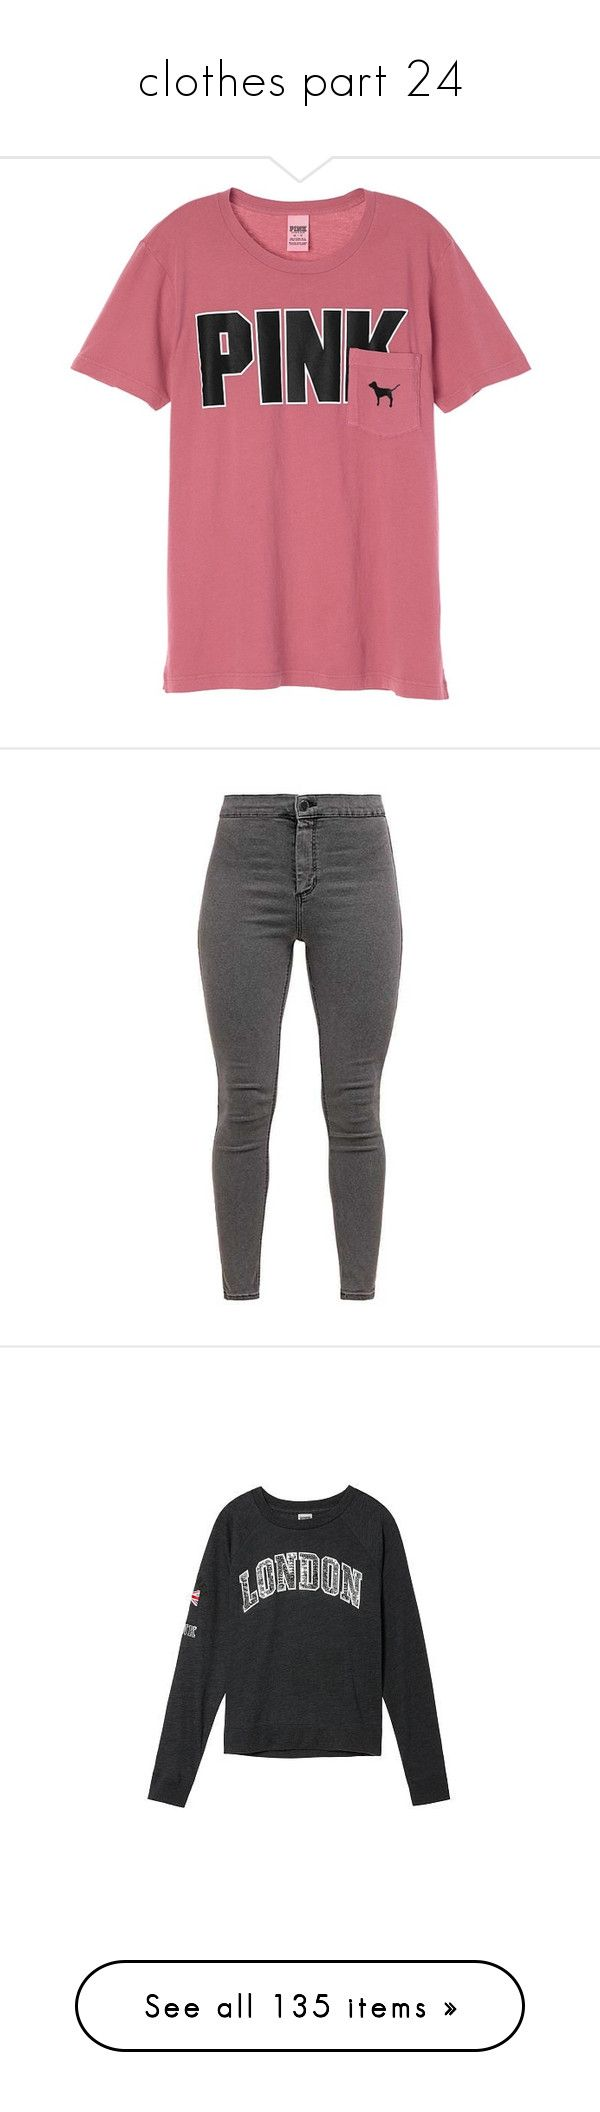 """""""clothes part 24"""" by savagebxtch24 ❤ liked on Polyvore featuring tops, shirts, jeans, gray jeans, petite jeans, petite skinny jeans, skinny jeans, grey skinny jeans, white and crew top"""